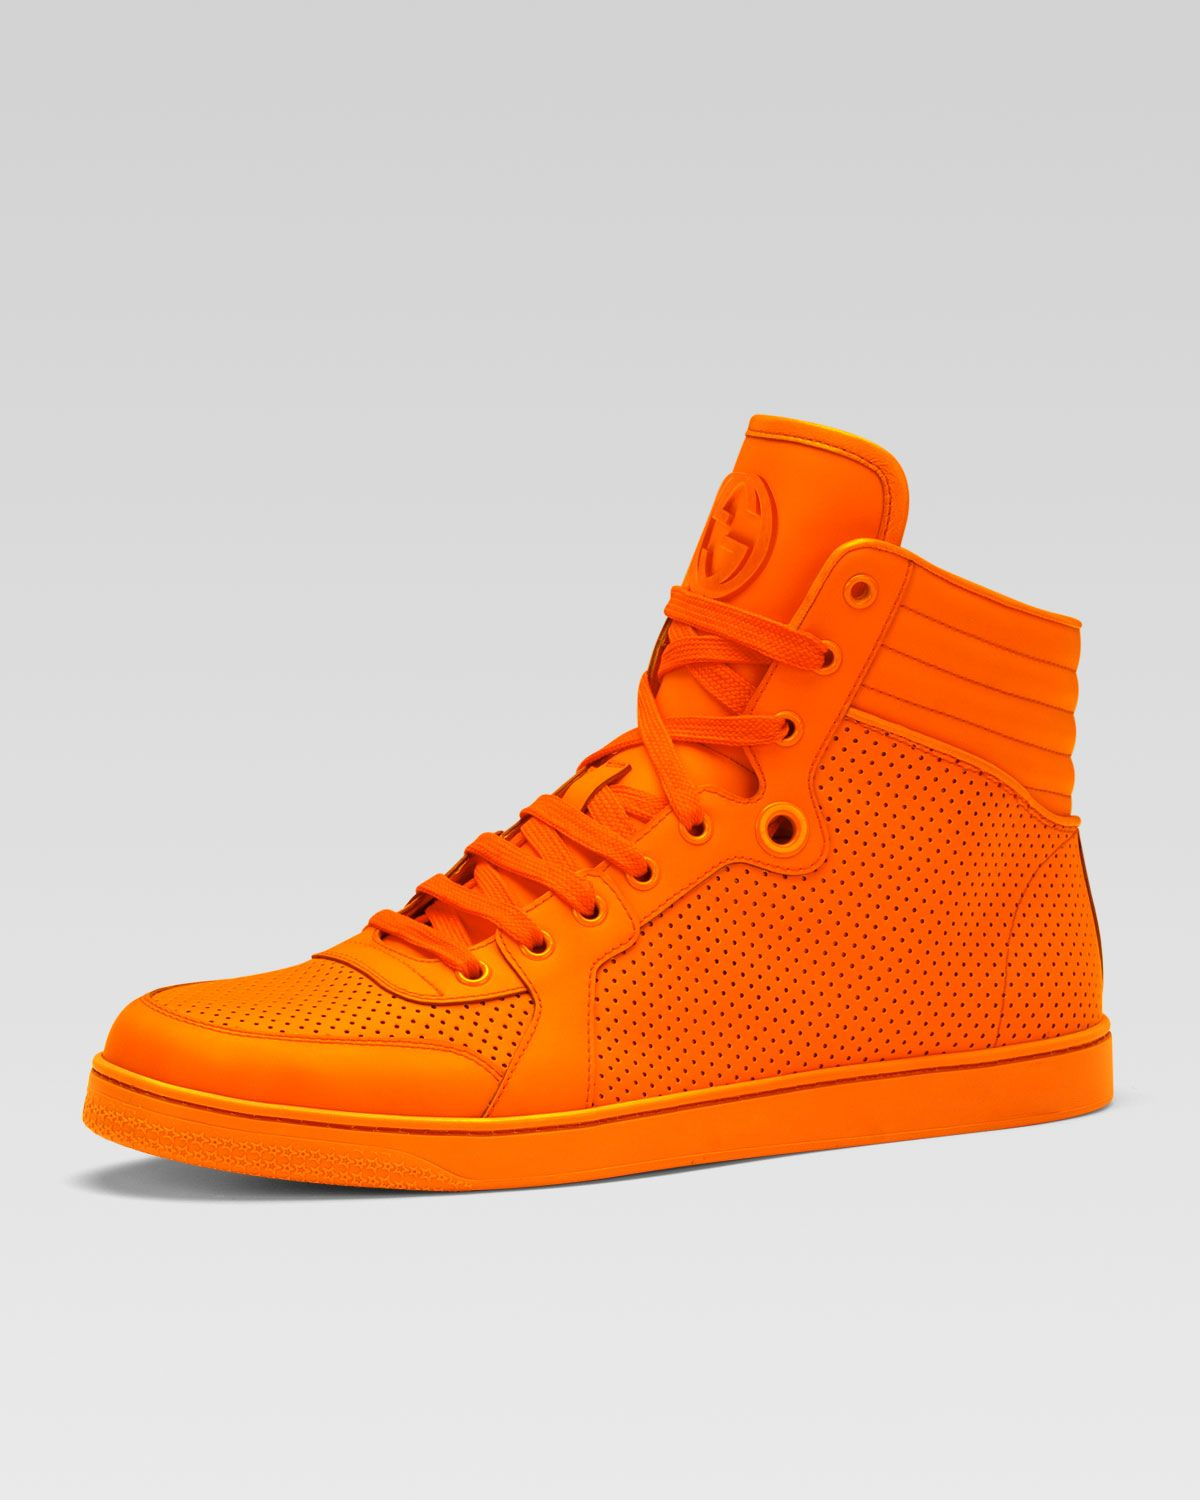 c5b831151e0 Coda Neon Leather High-Top Sneaker Orange